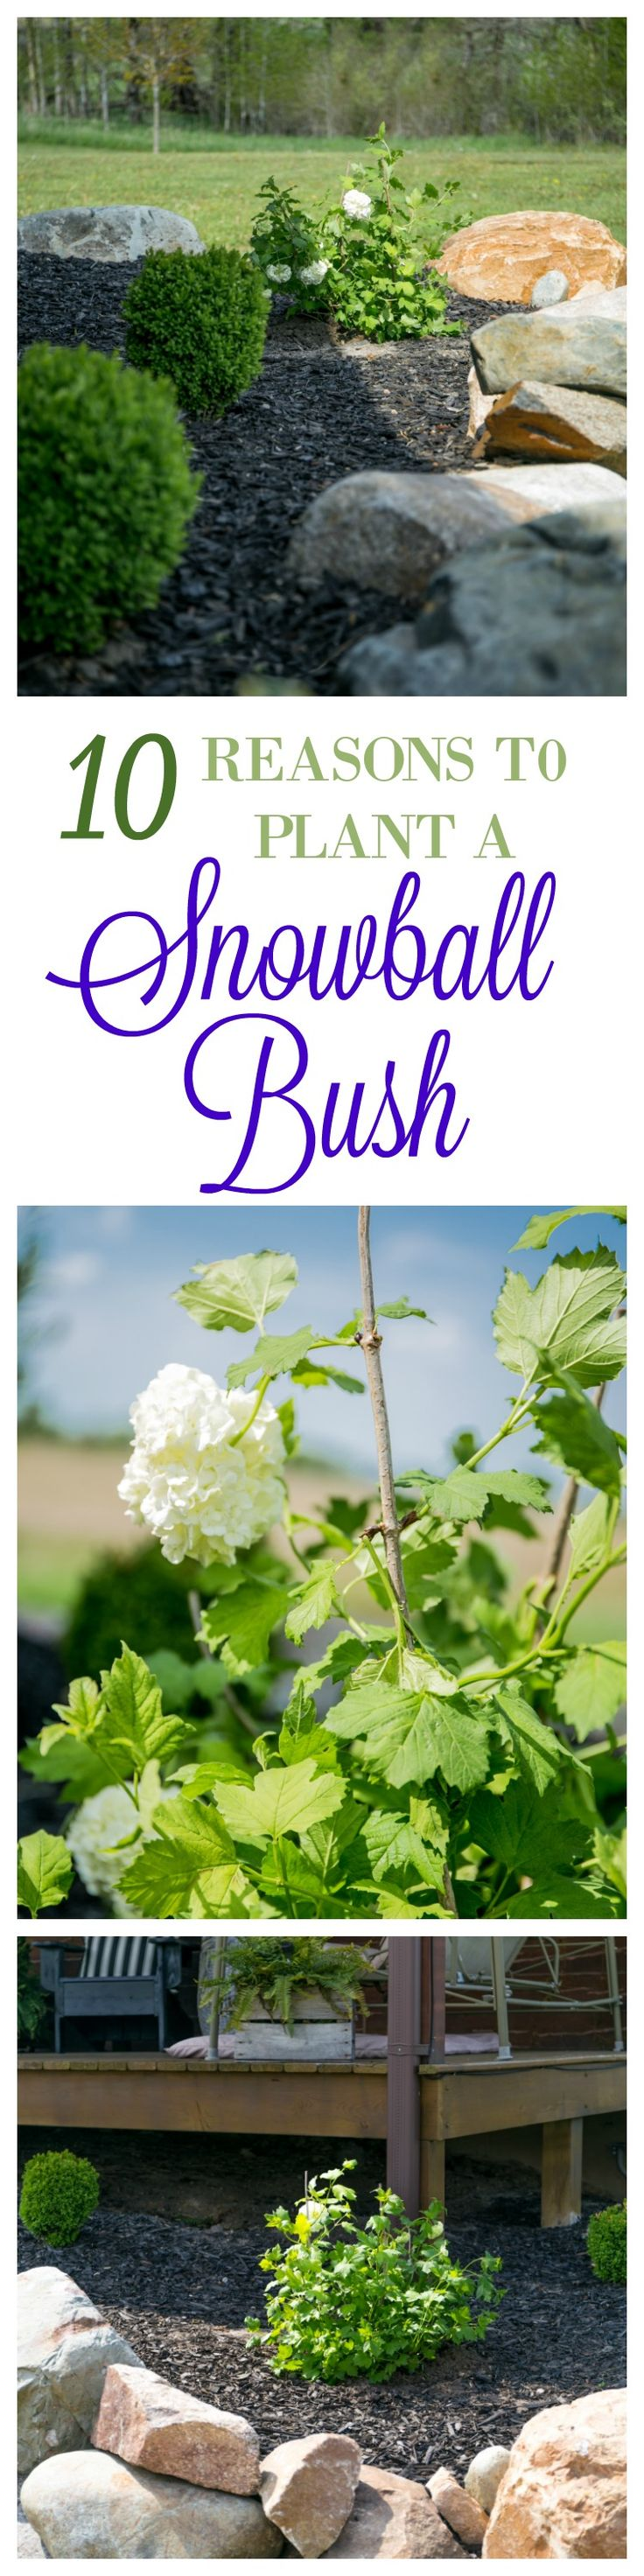 List of annual flowers ided by color sun amp shade types - 10 Reasons To Plant A Snowball Bush Grow In Full Sun Which Is What I